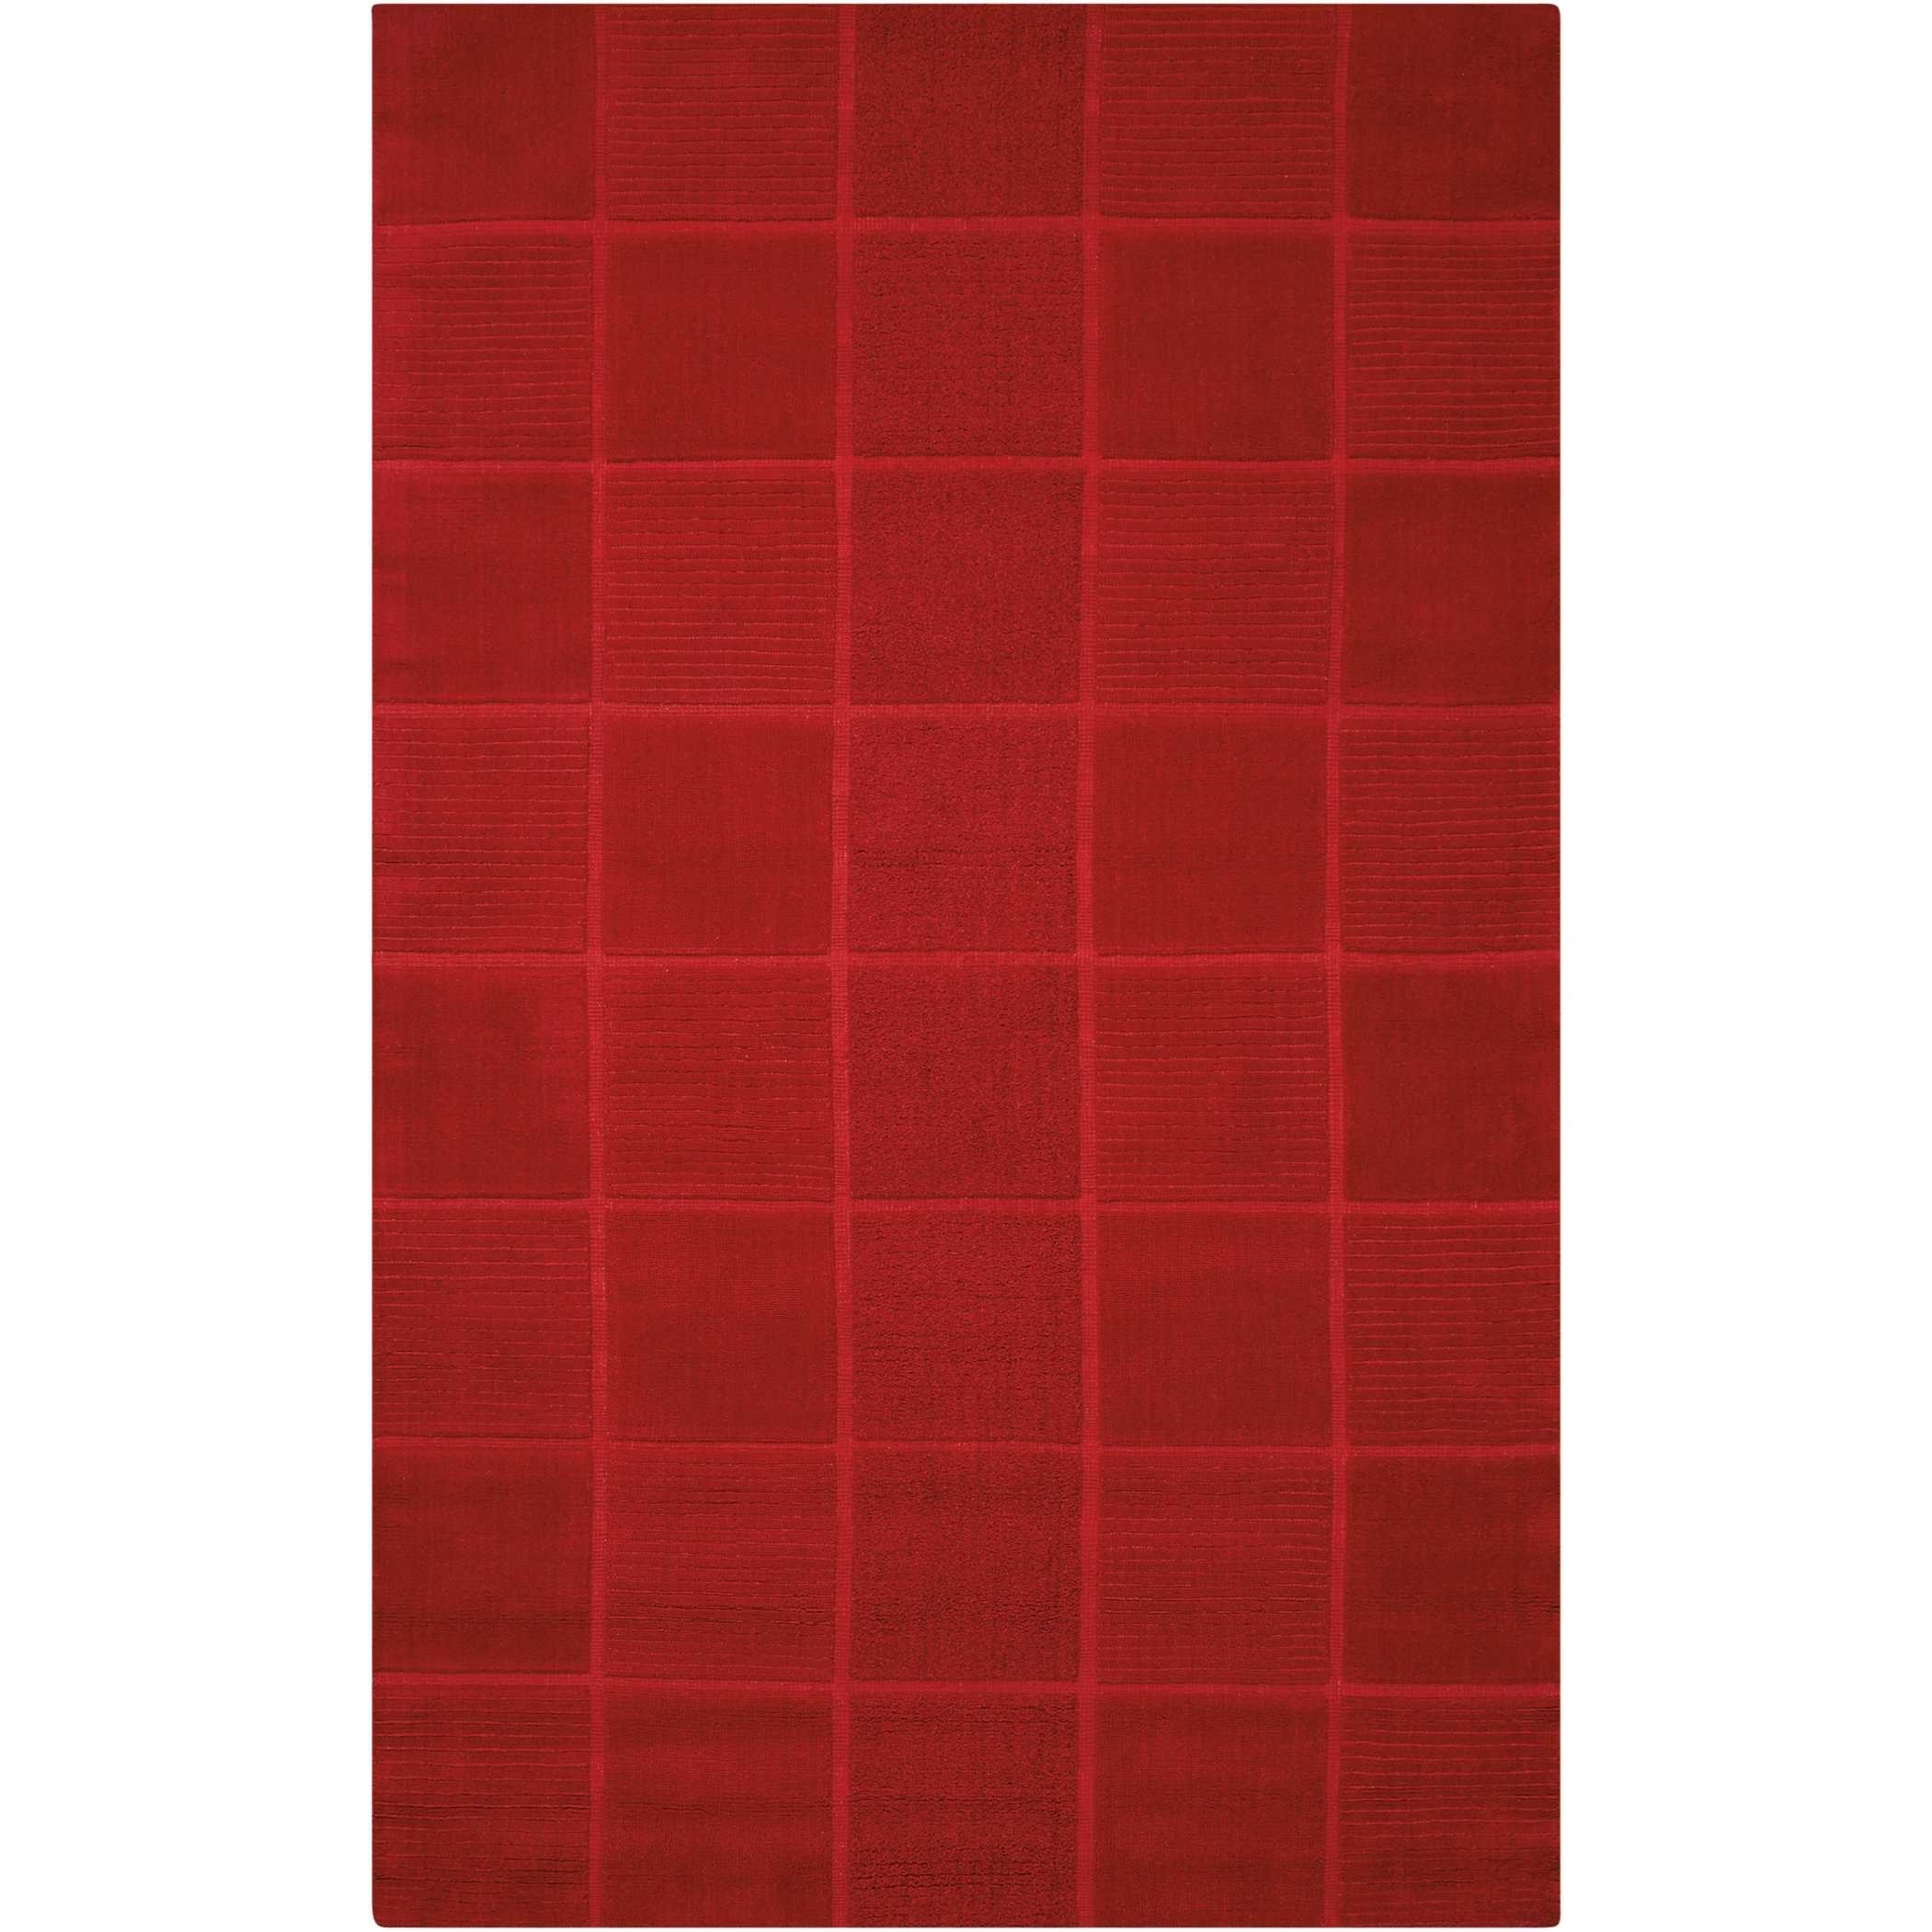 """Westport 2'6"""" x 4' Red Rectangle Rug by Nourison at Home Collections Furniture"""